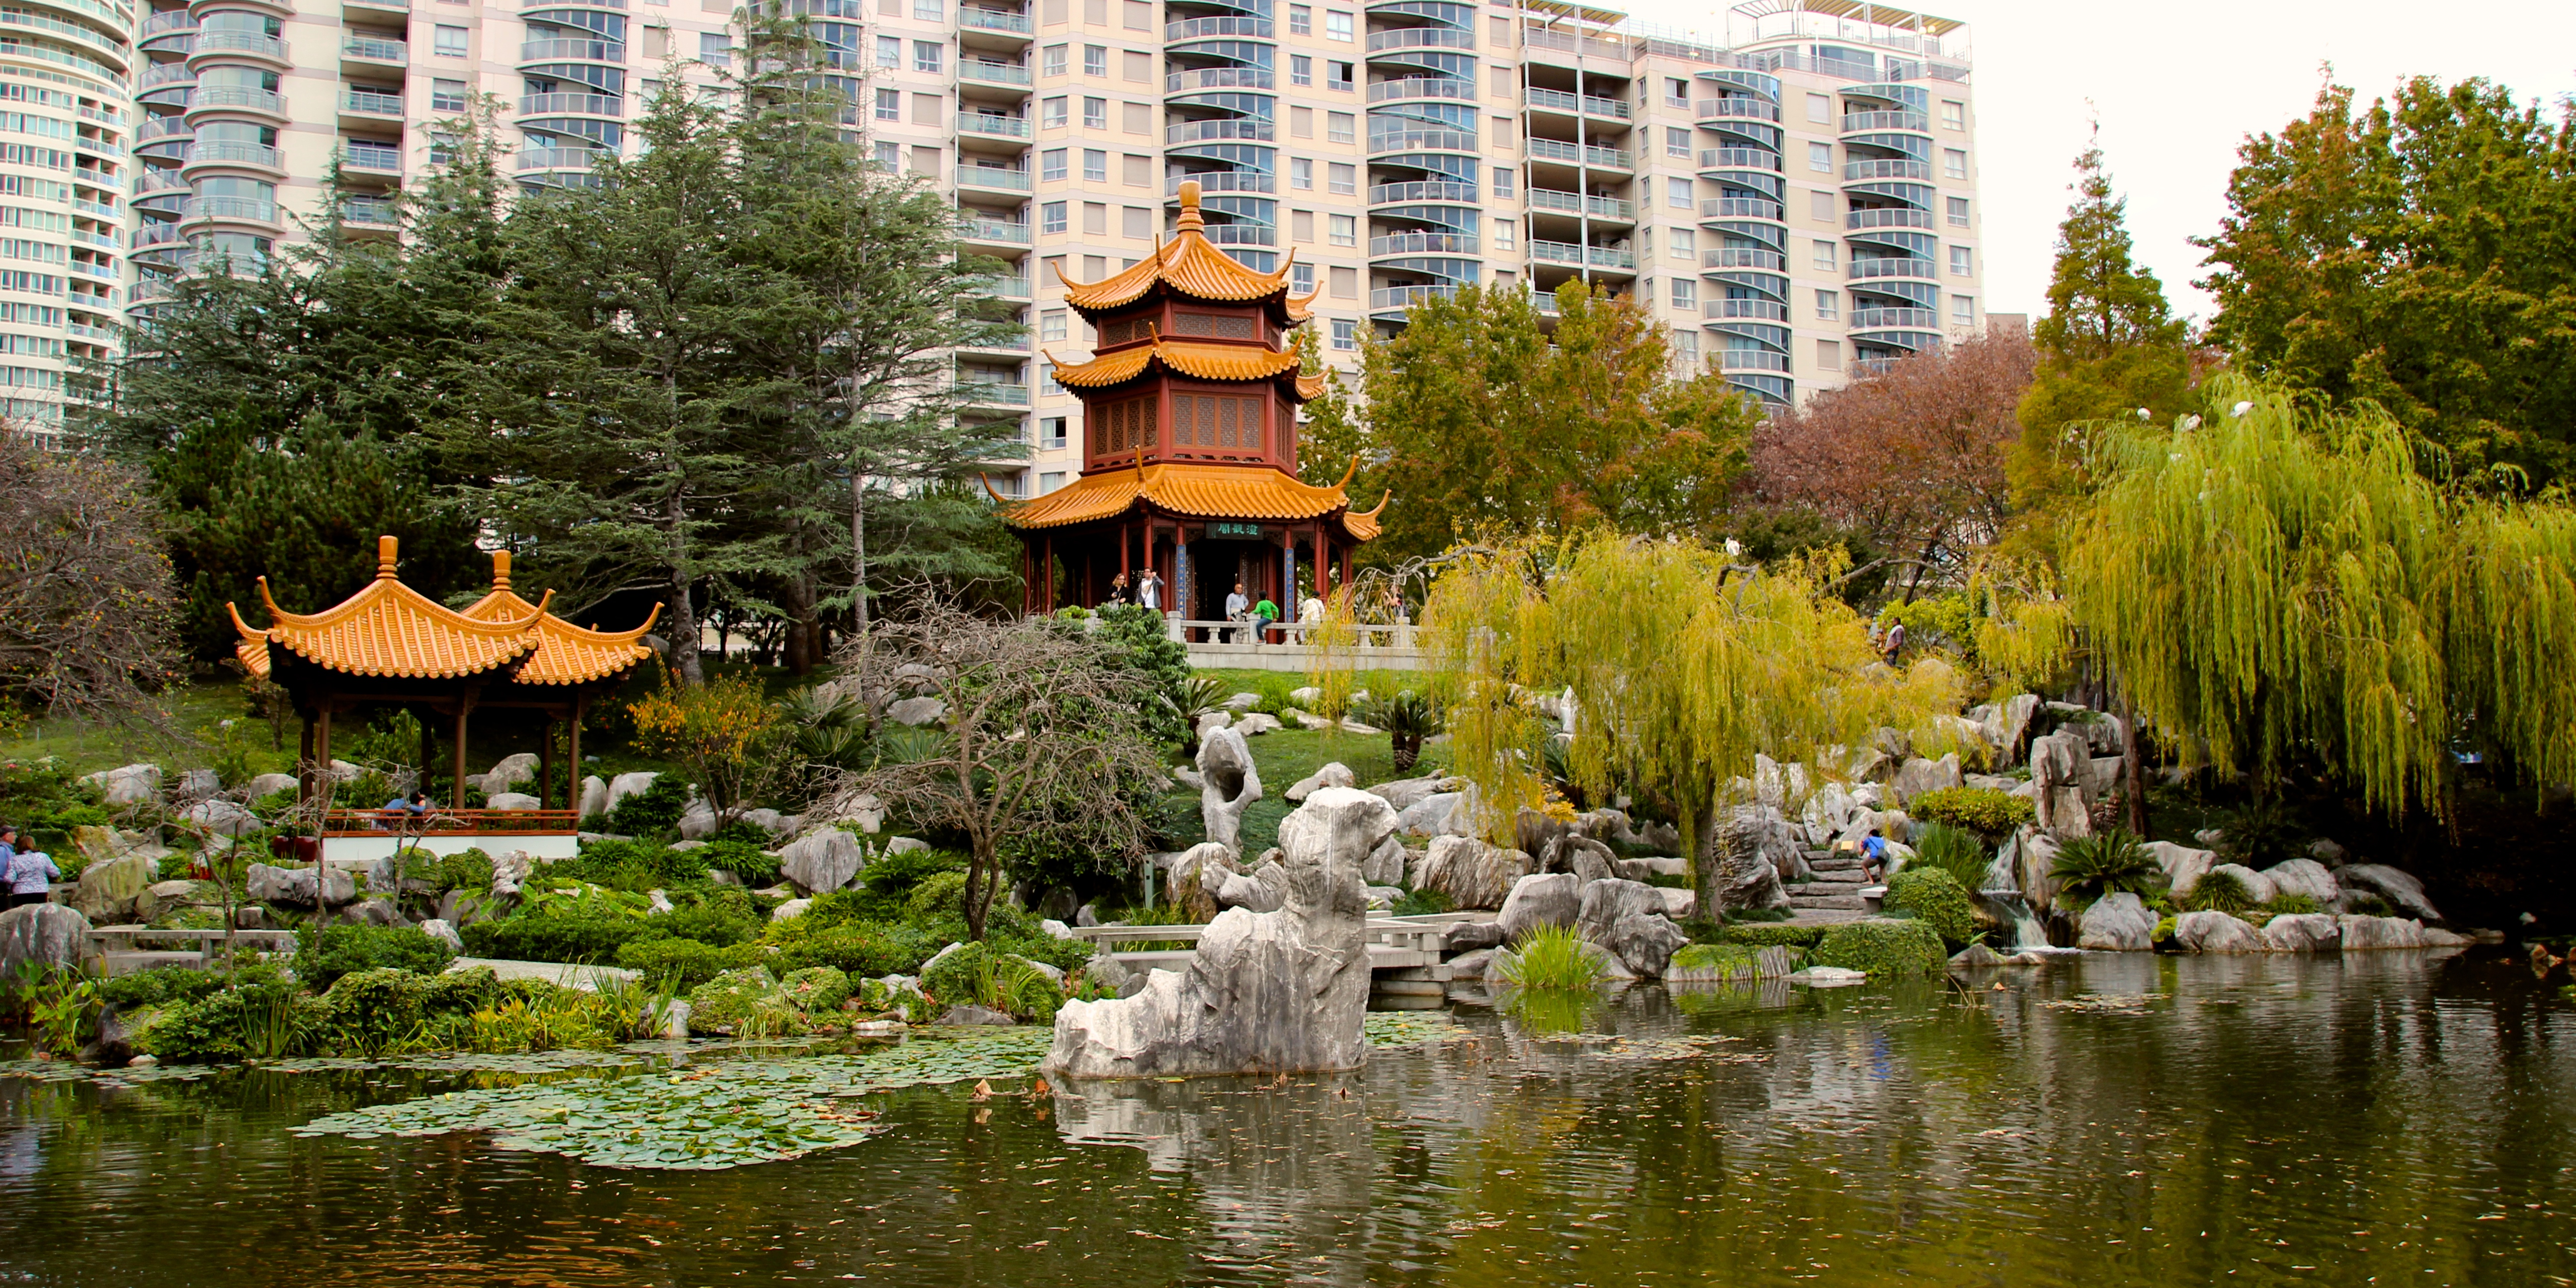 lake park asian personals Lake park's best free dating site 100% free online dating for lake park singles at mingle2com our free personal ads are full of single women and men in lake park looking for serious relationships, a little online flirtation, or new friends to go out with start meeting singles in lake park today with our free online personals and free lake.